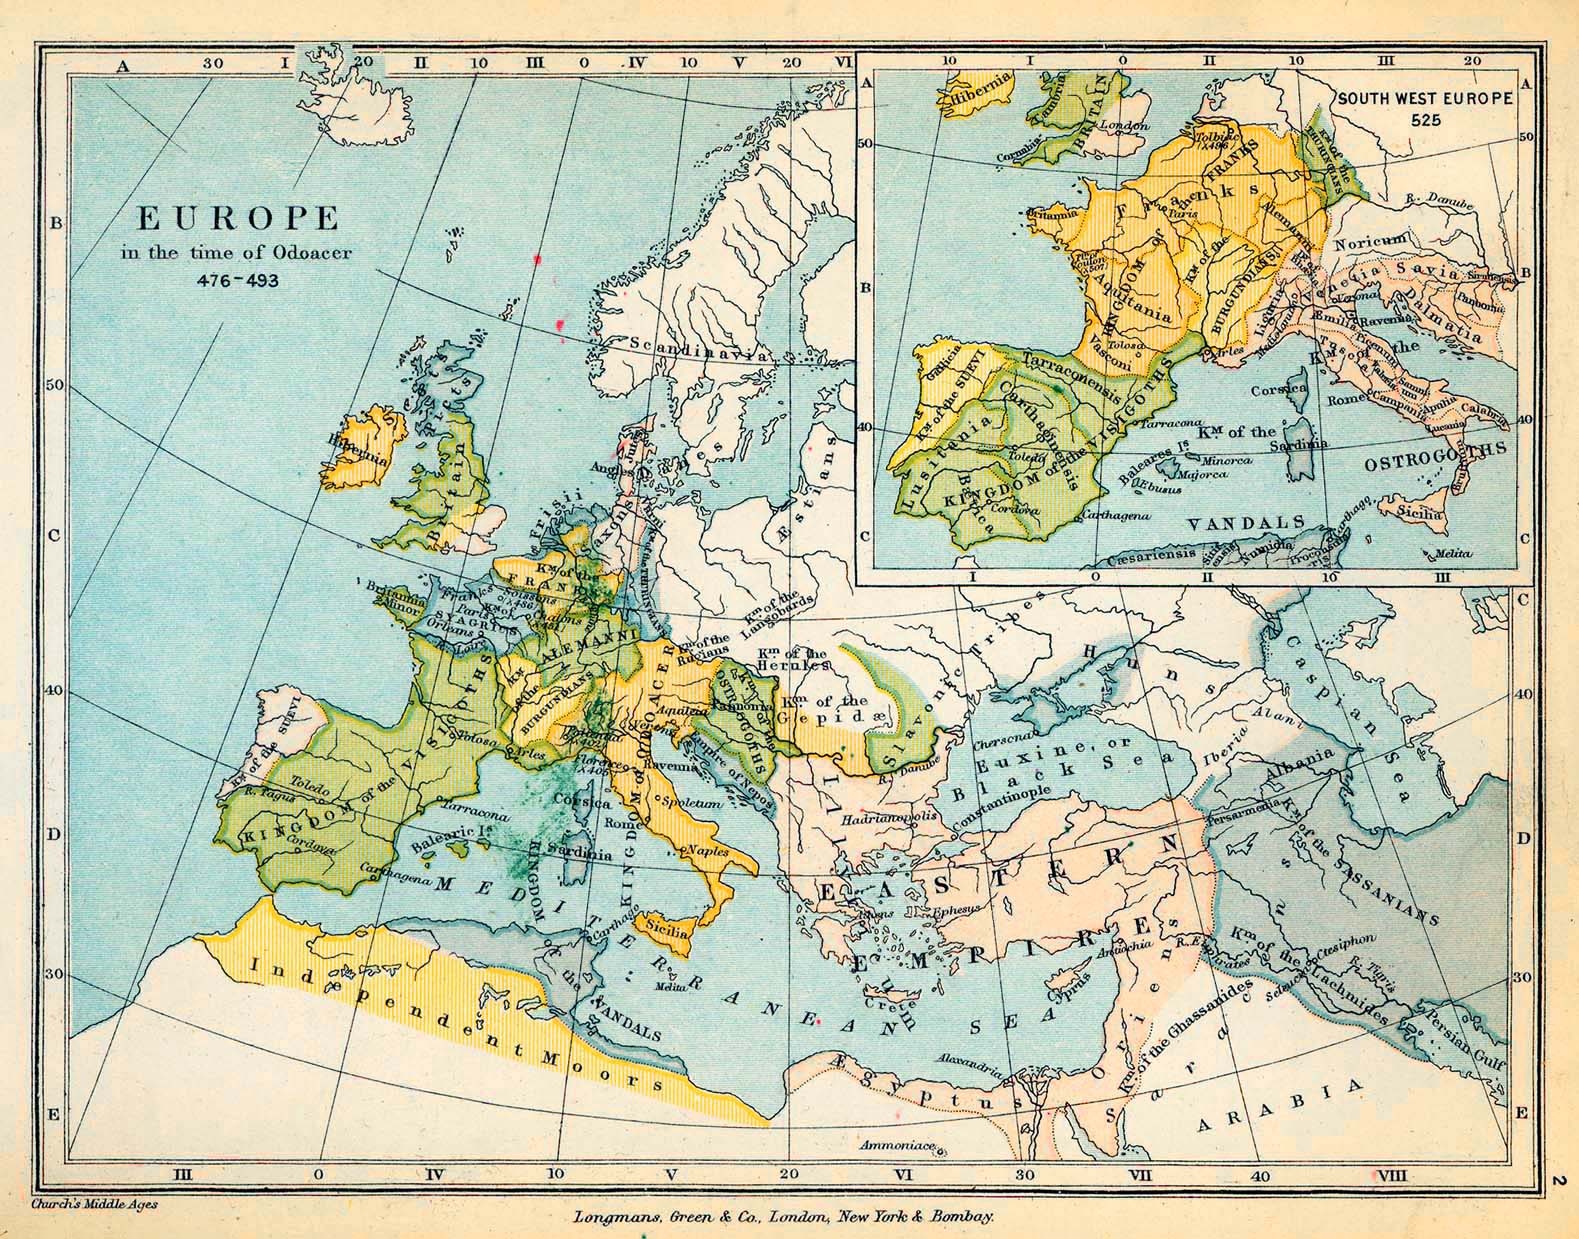 Map of Europe in the time of Odoacer 476-493